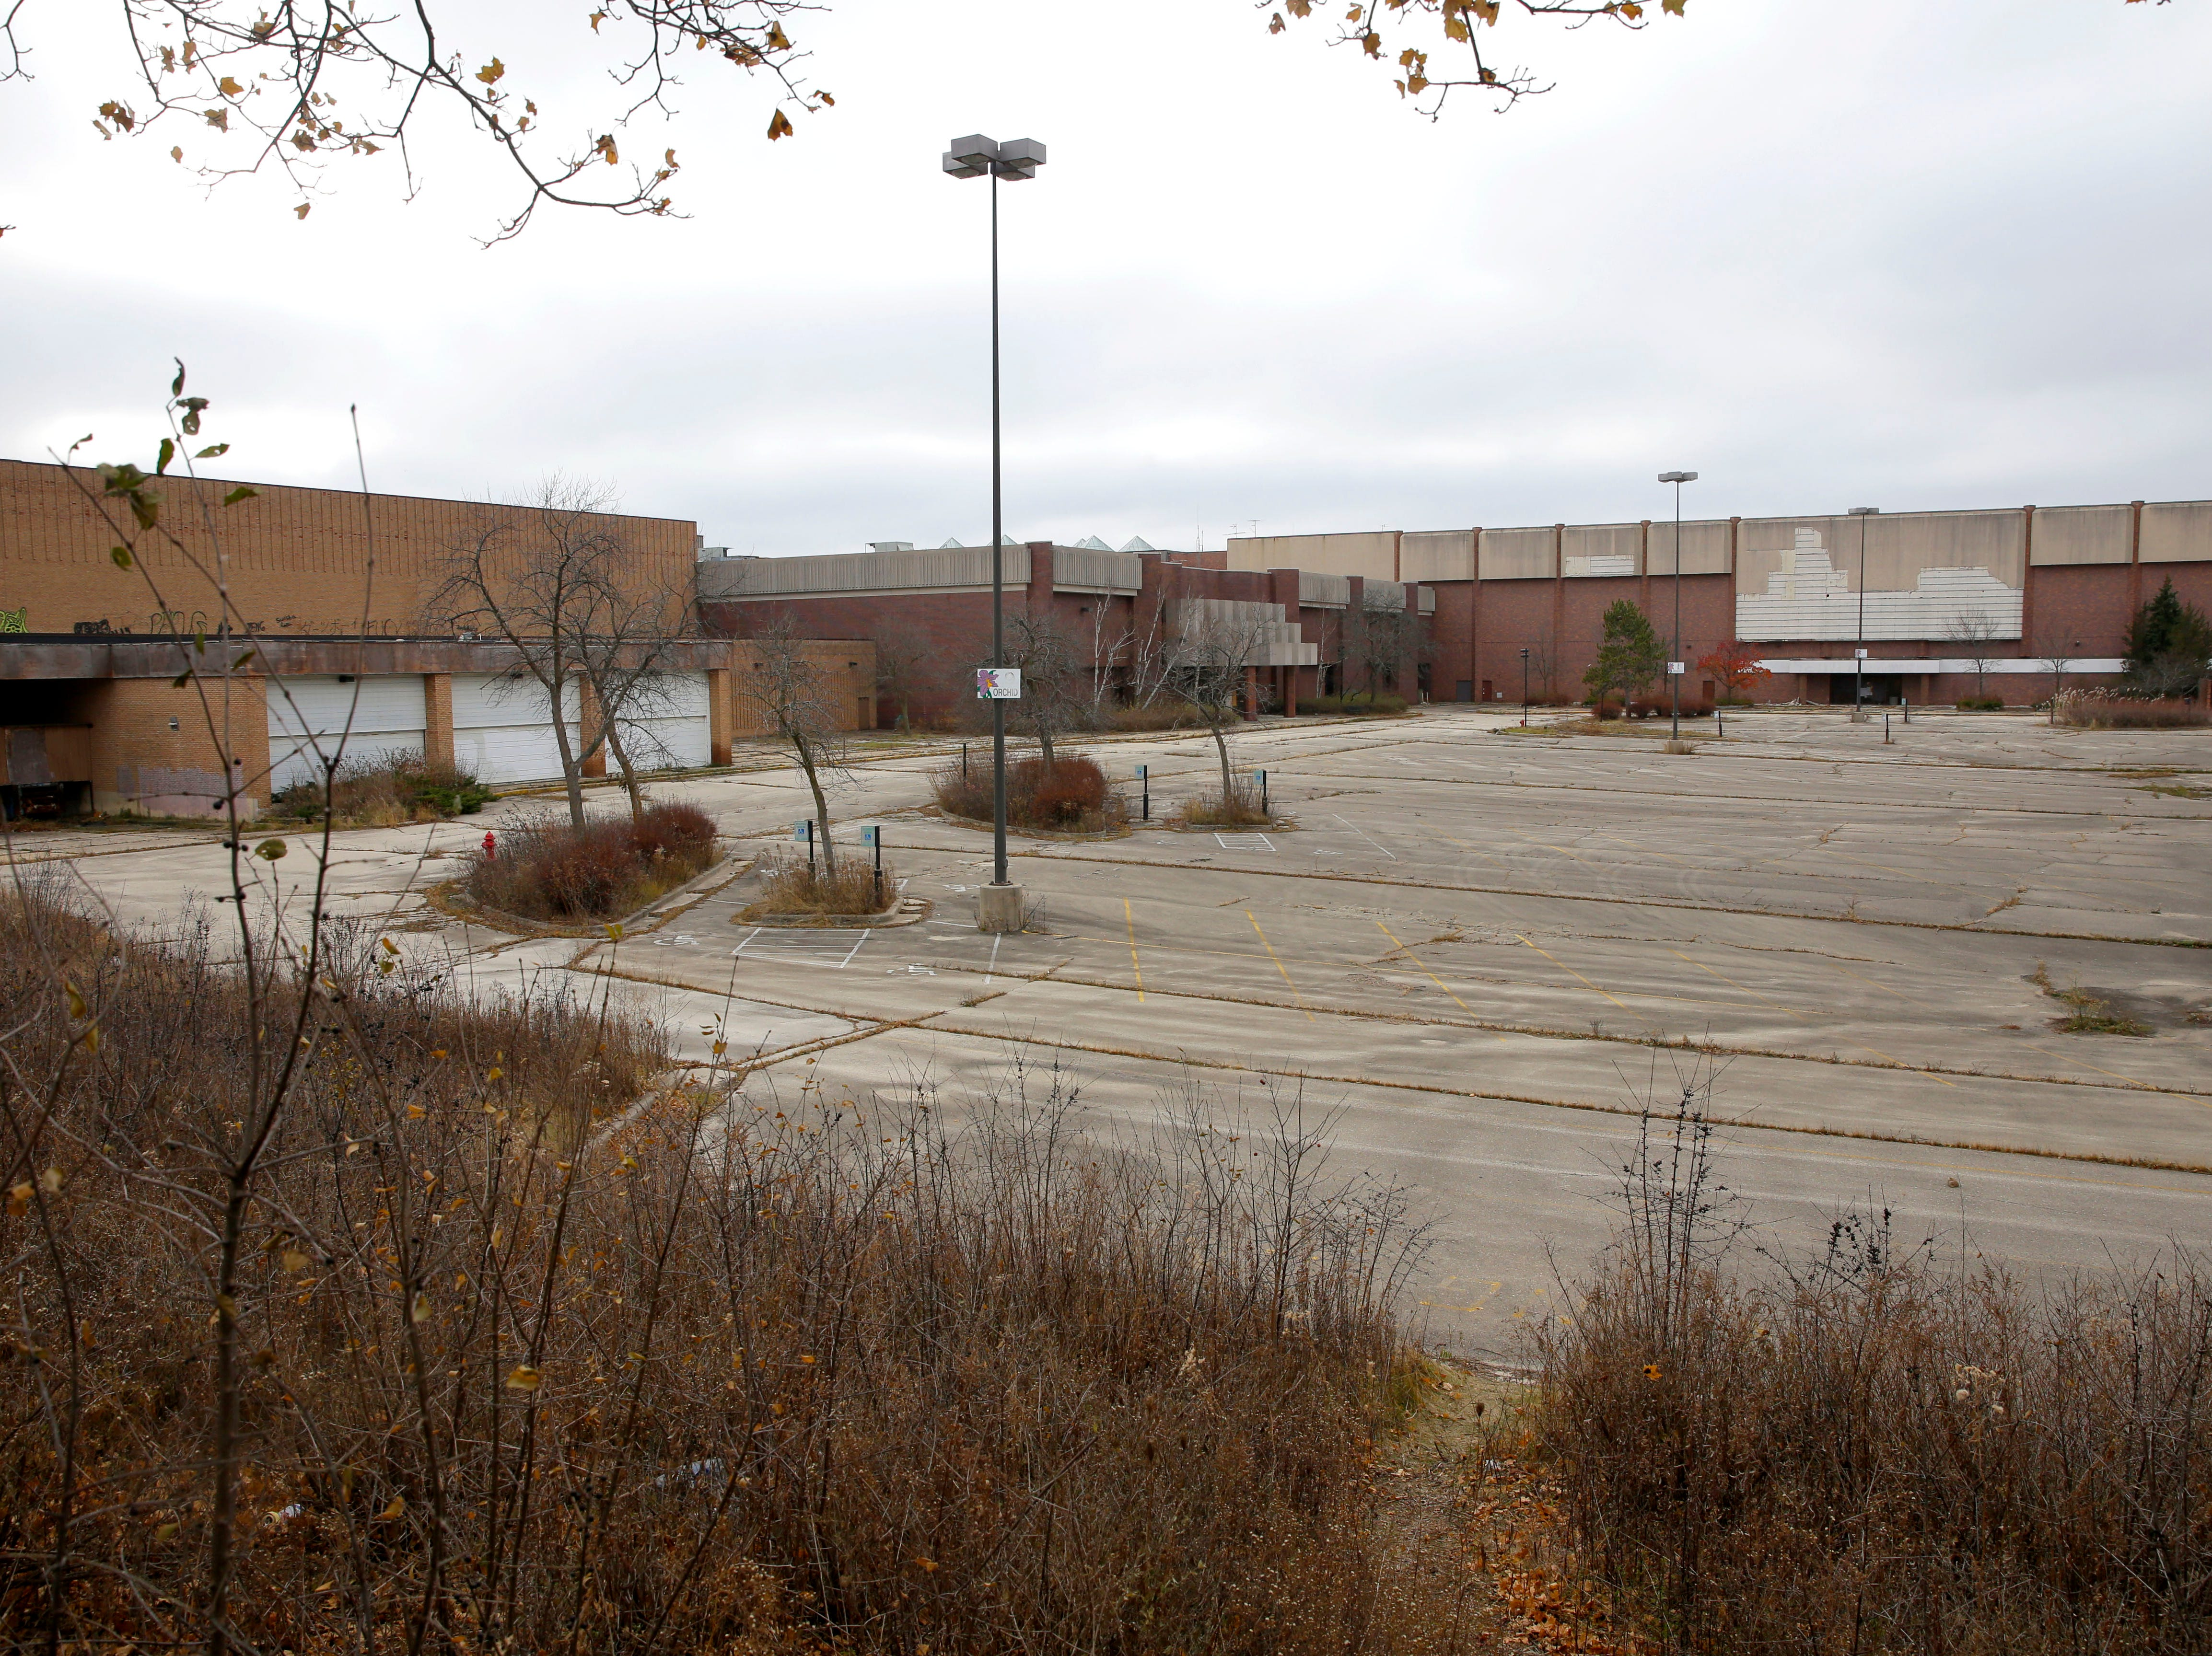 November 2017: Empty lots surround Milwaukee's former Northridge Mall on W. Brown Deer Road.